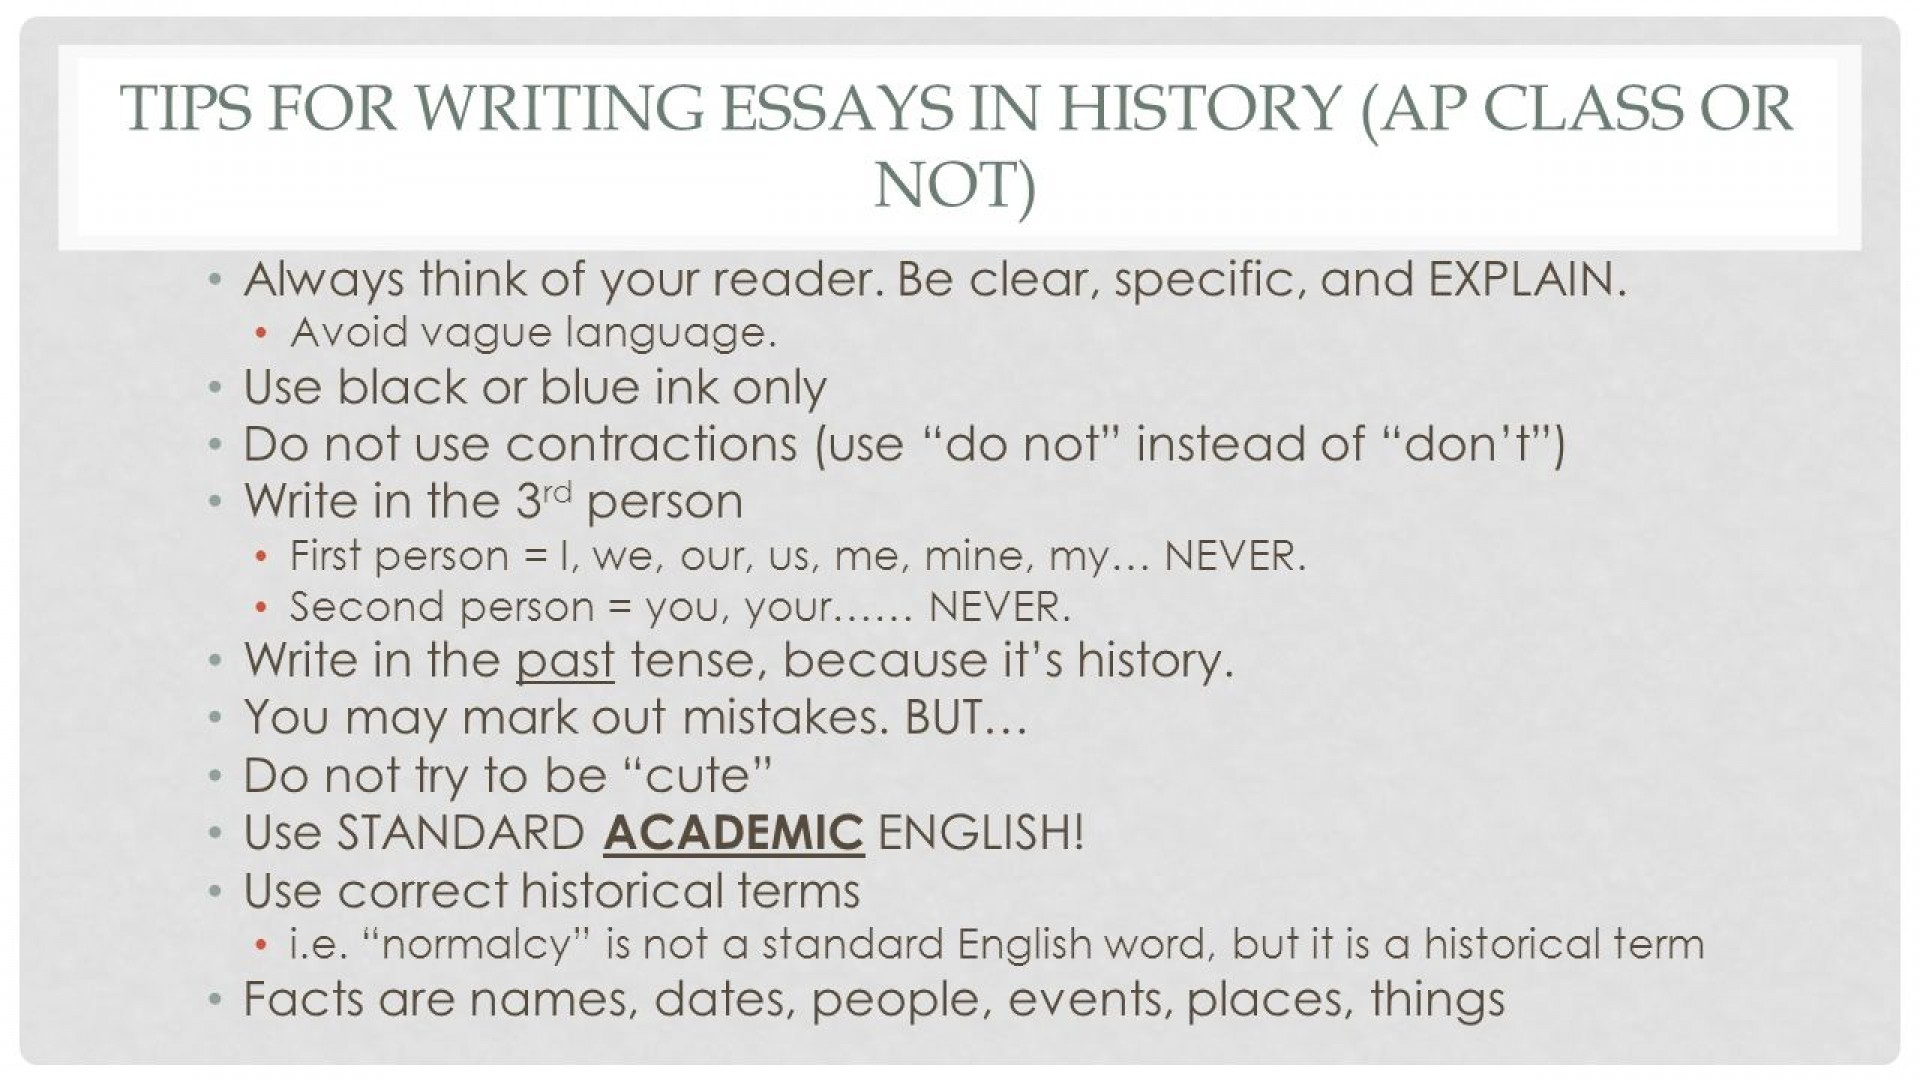 010 Essay Example How To Write Long The Question Ppt Downl In One Night For Ap Us History Proposal World With Little Information Quickly Apush Dreaded A College Good 1920